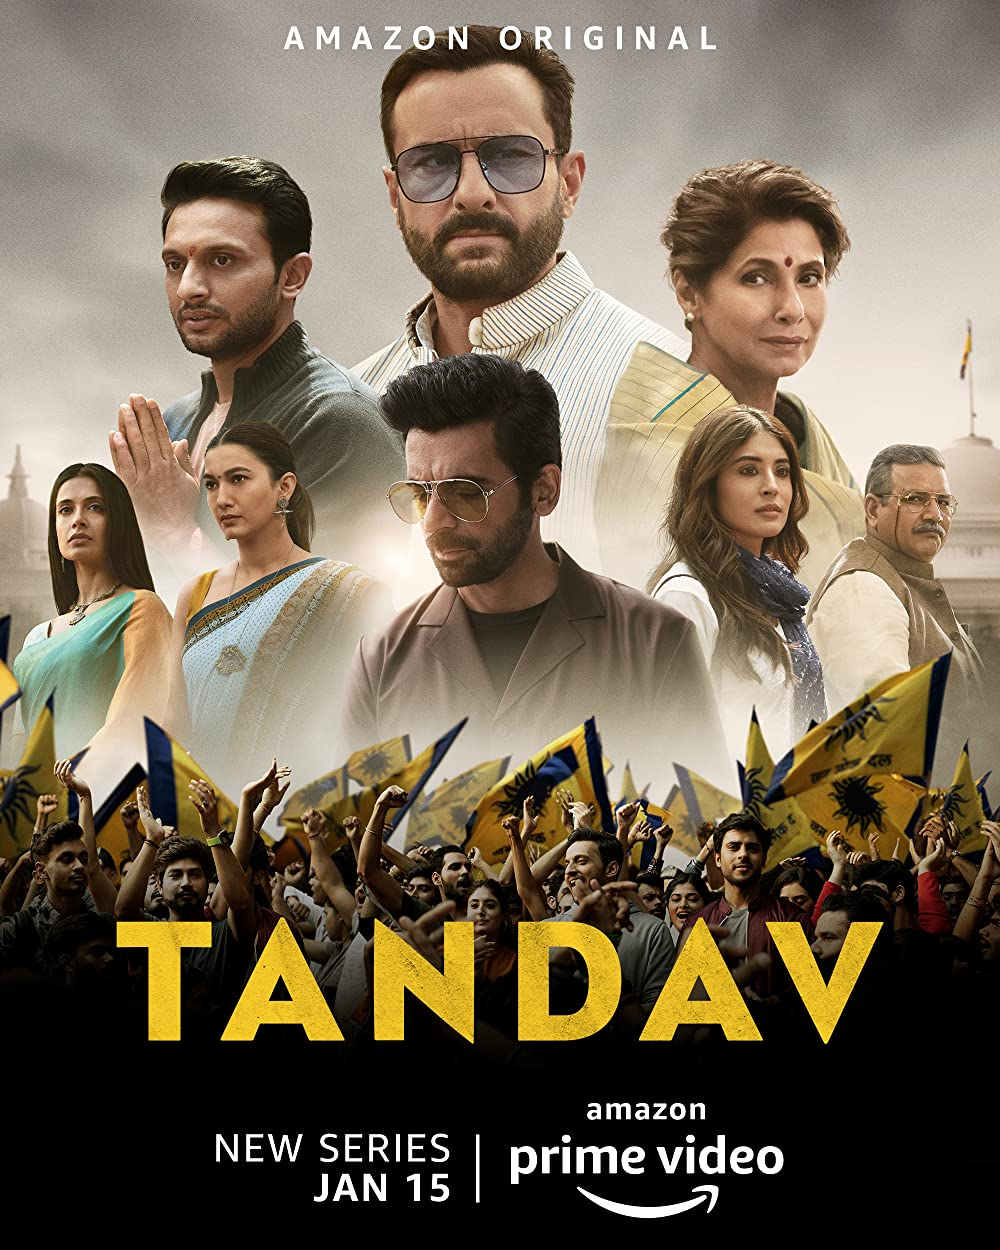 Tandav S01 2021 Hindi Amazon Original Complete Web Series 1GB HDRip Download